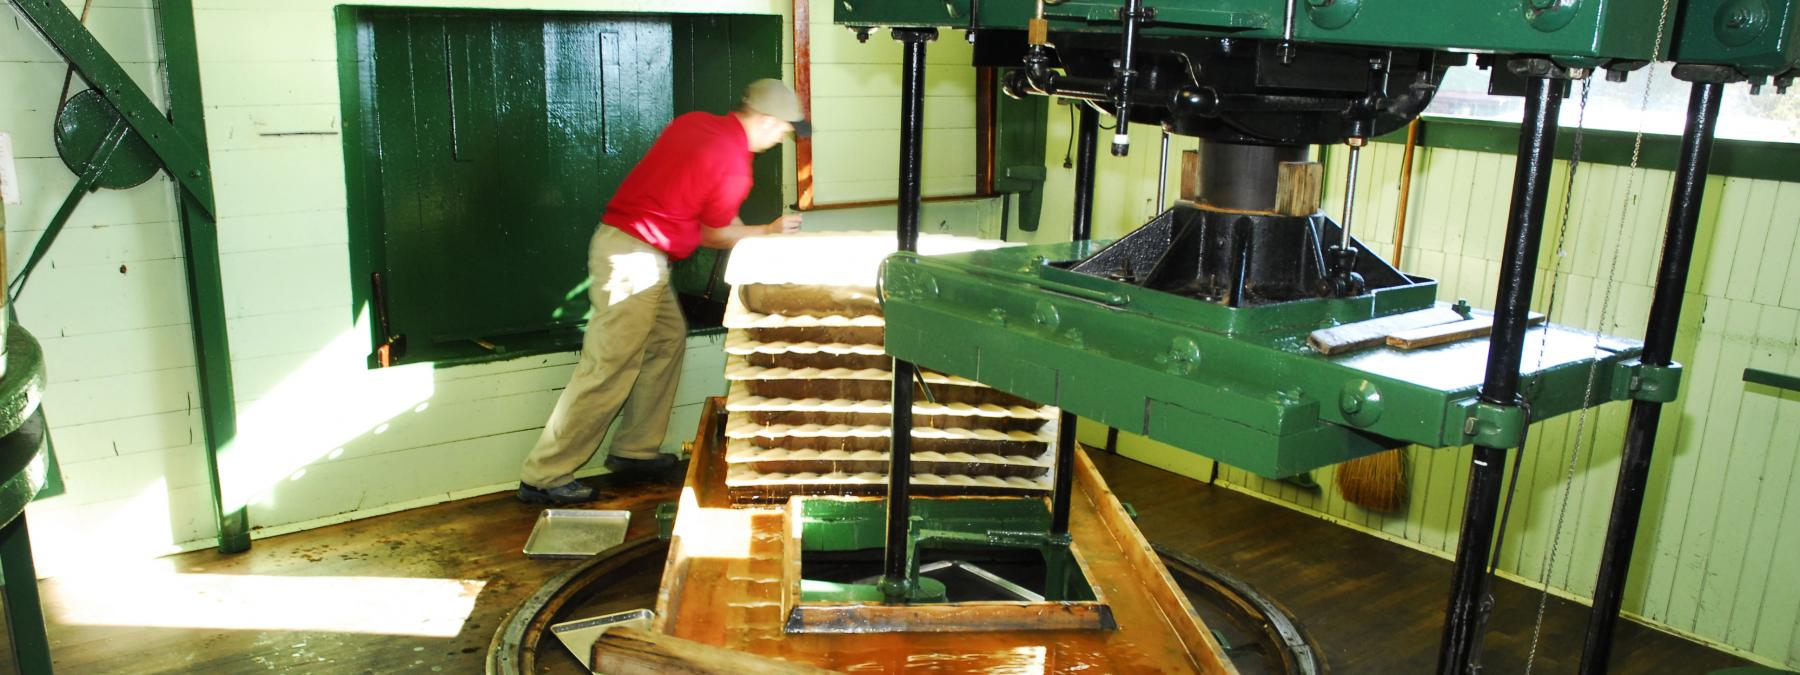 Turning the Pressing Tray